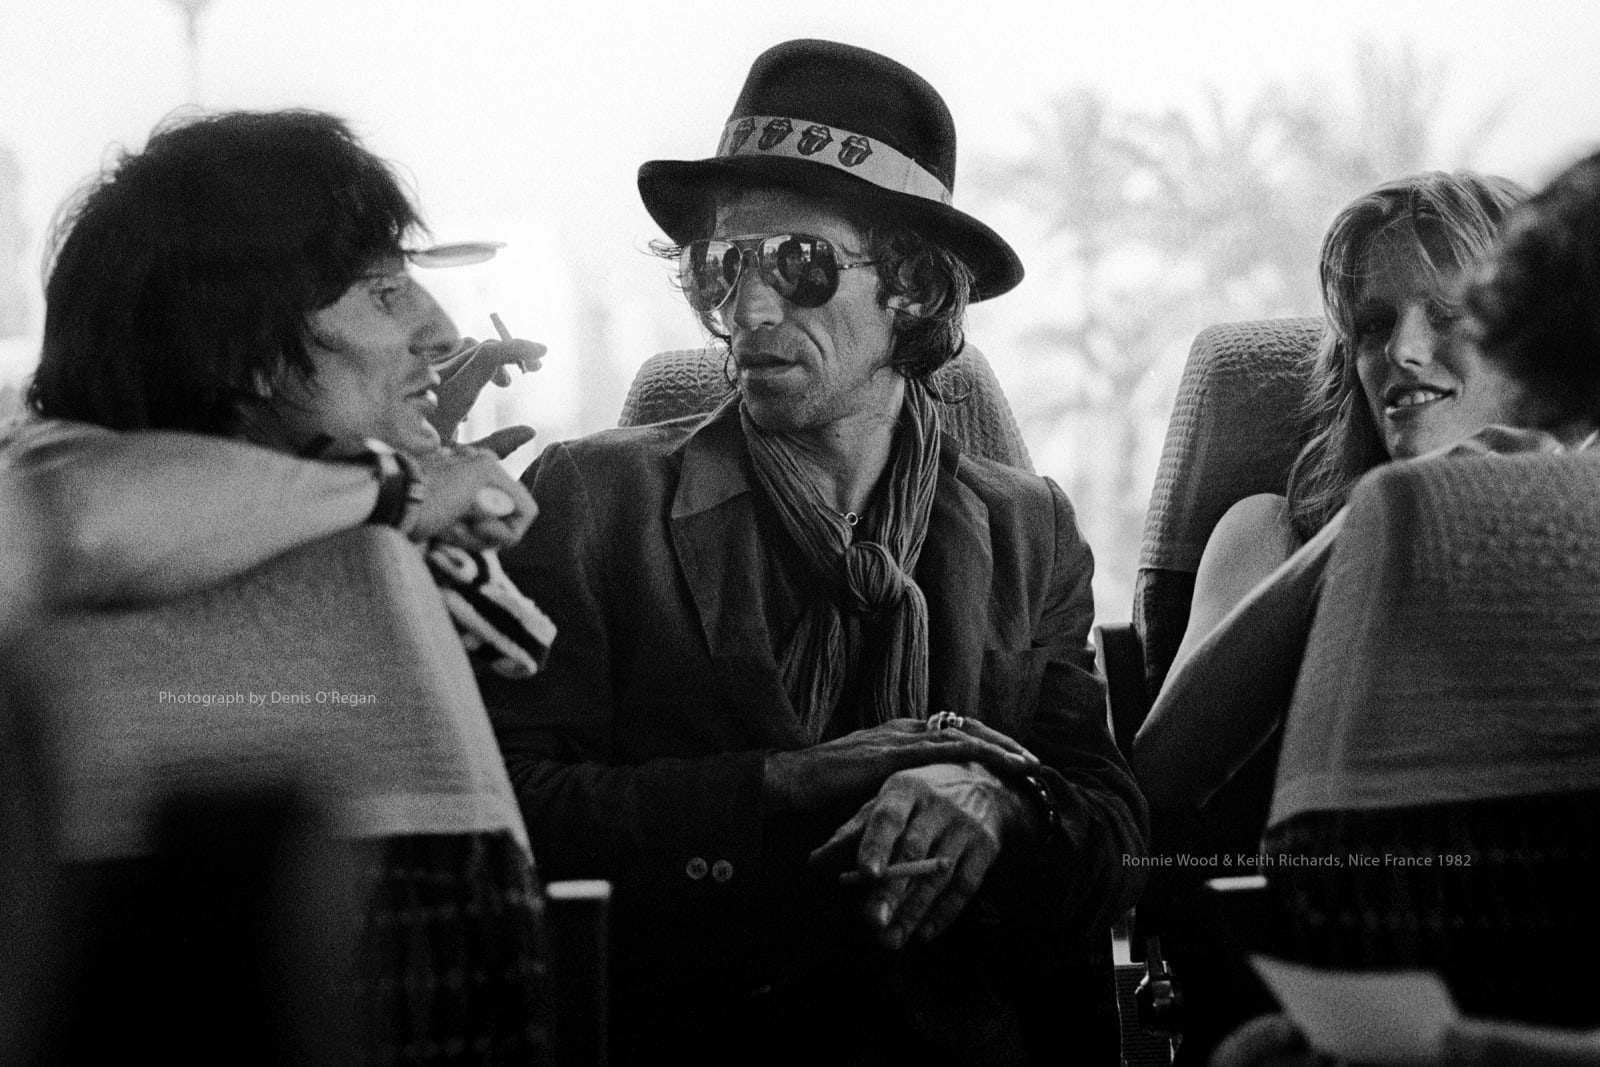 ROLLING STONES, Ronnie & Keith, Nice France, 1982